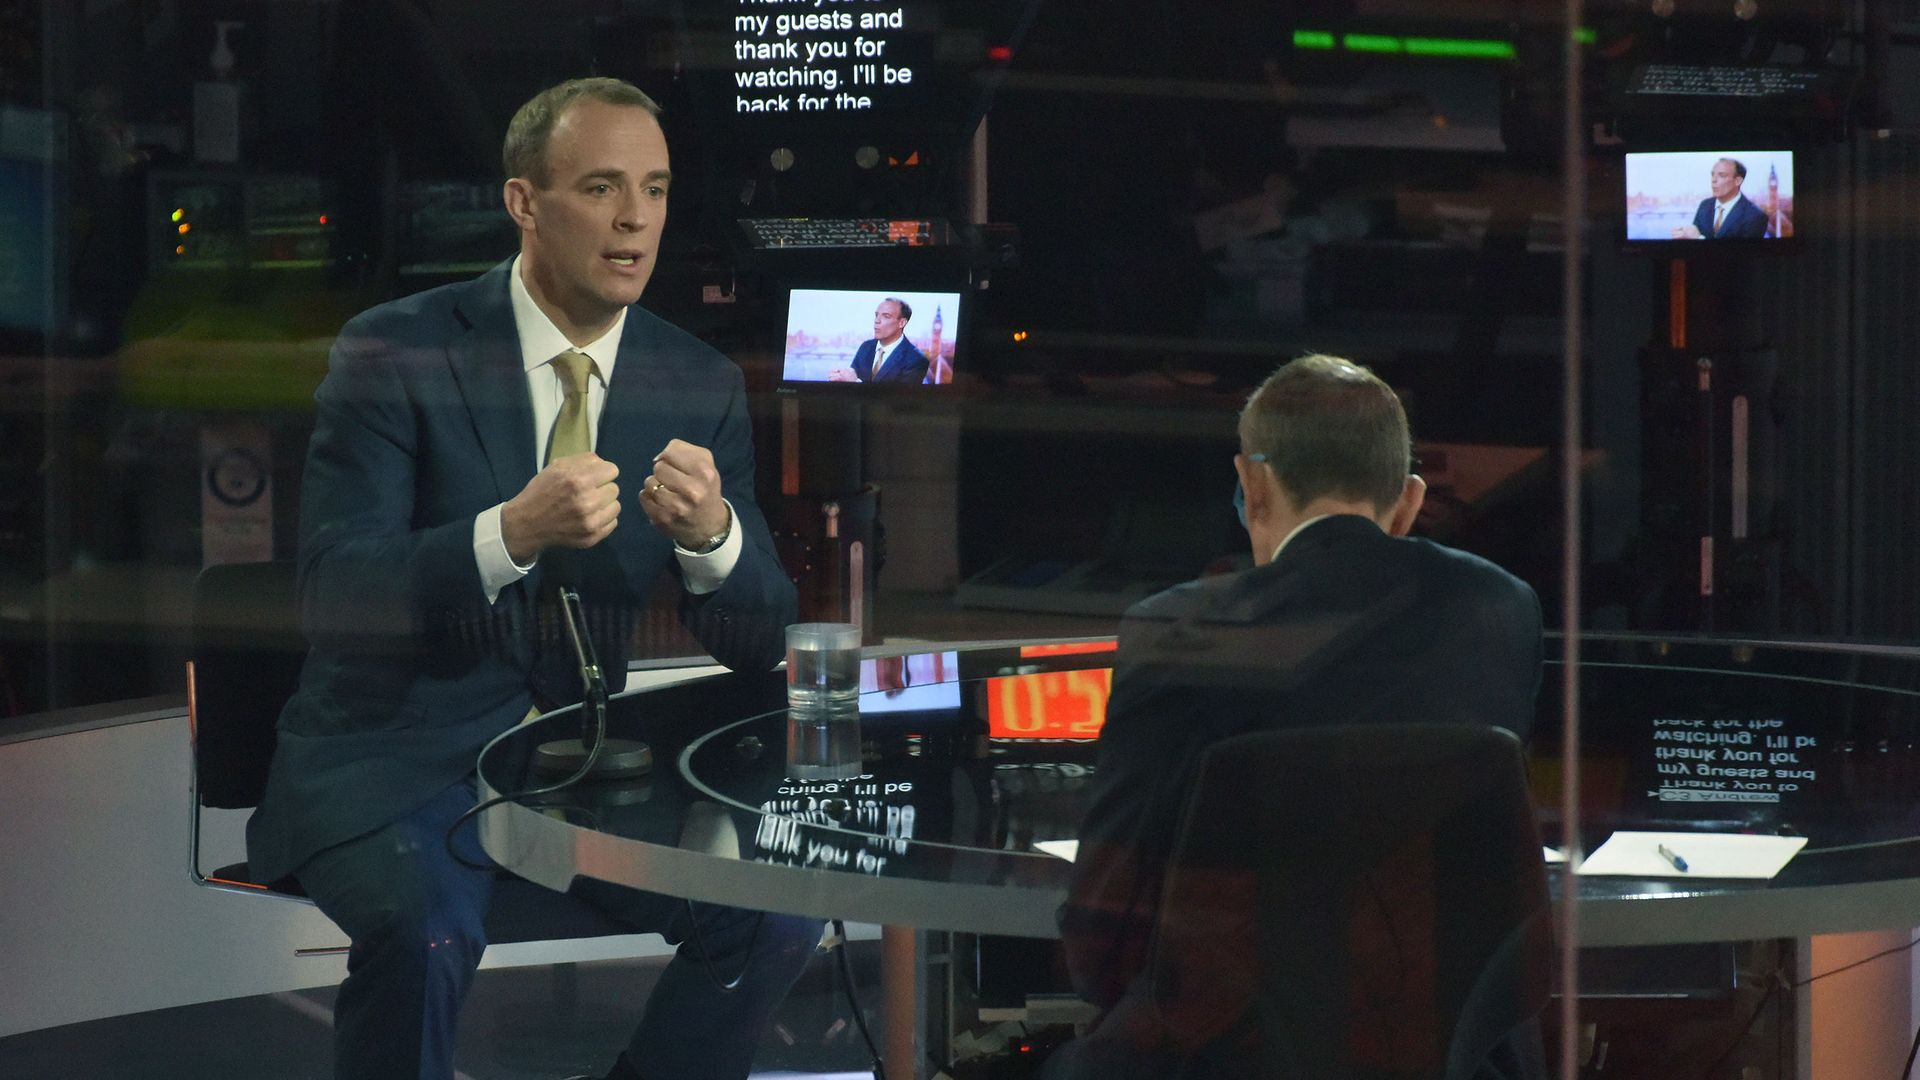 Andrew Marr (right) speaking with Foreign Secretary Dominic Raab during the BBC1 current affairs programme, The Andrew Marr Show. - Credit: PA